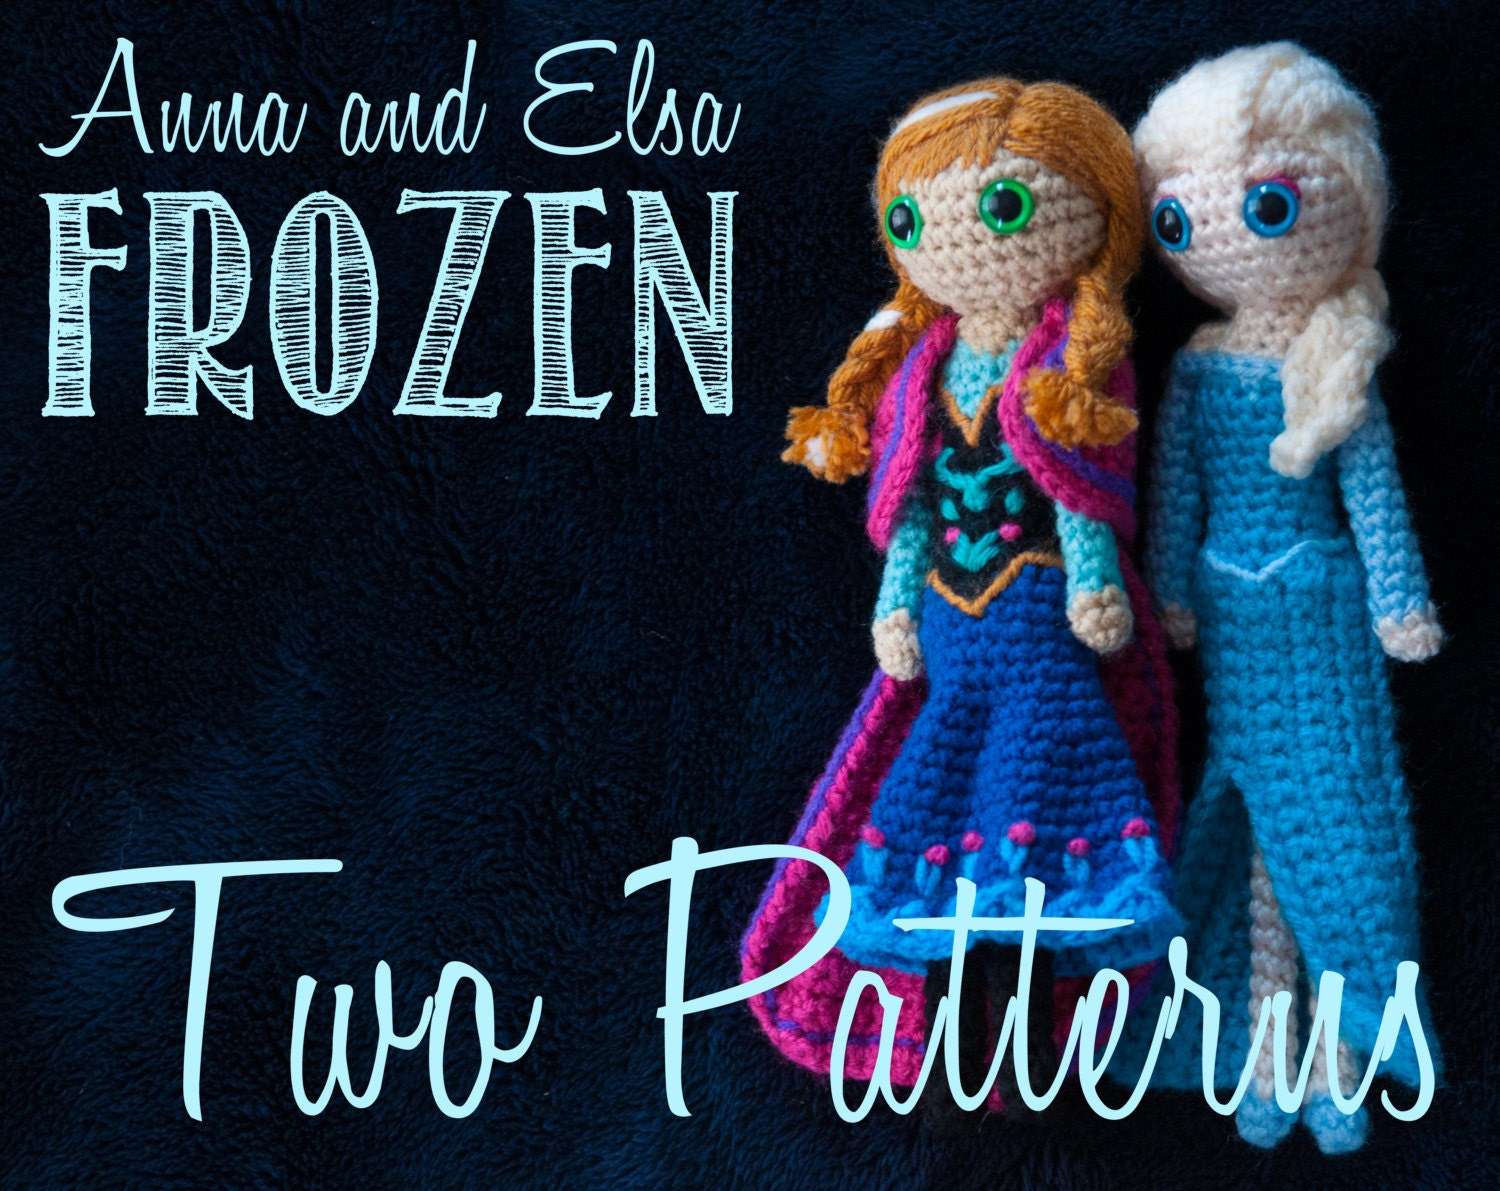 Crochet Elsa Amigurumi : Anna and Elsa Frozen Amigurumi Crochet Patterns